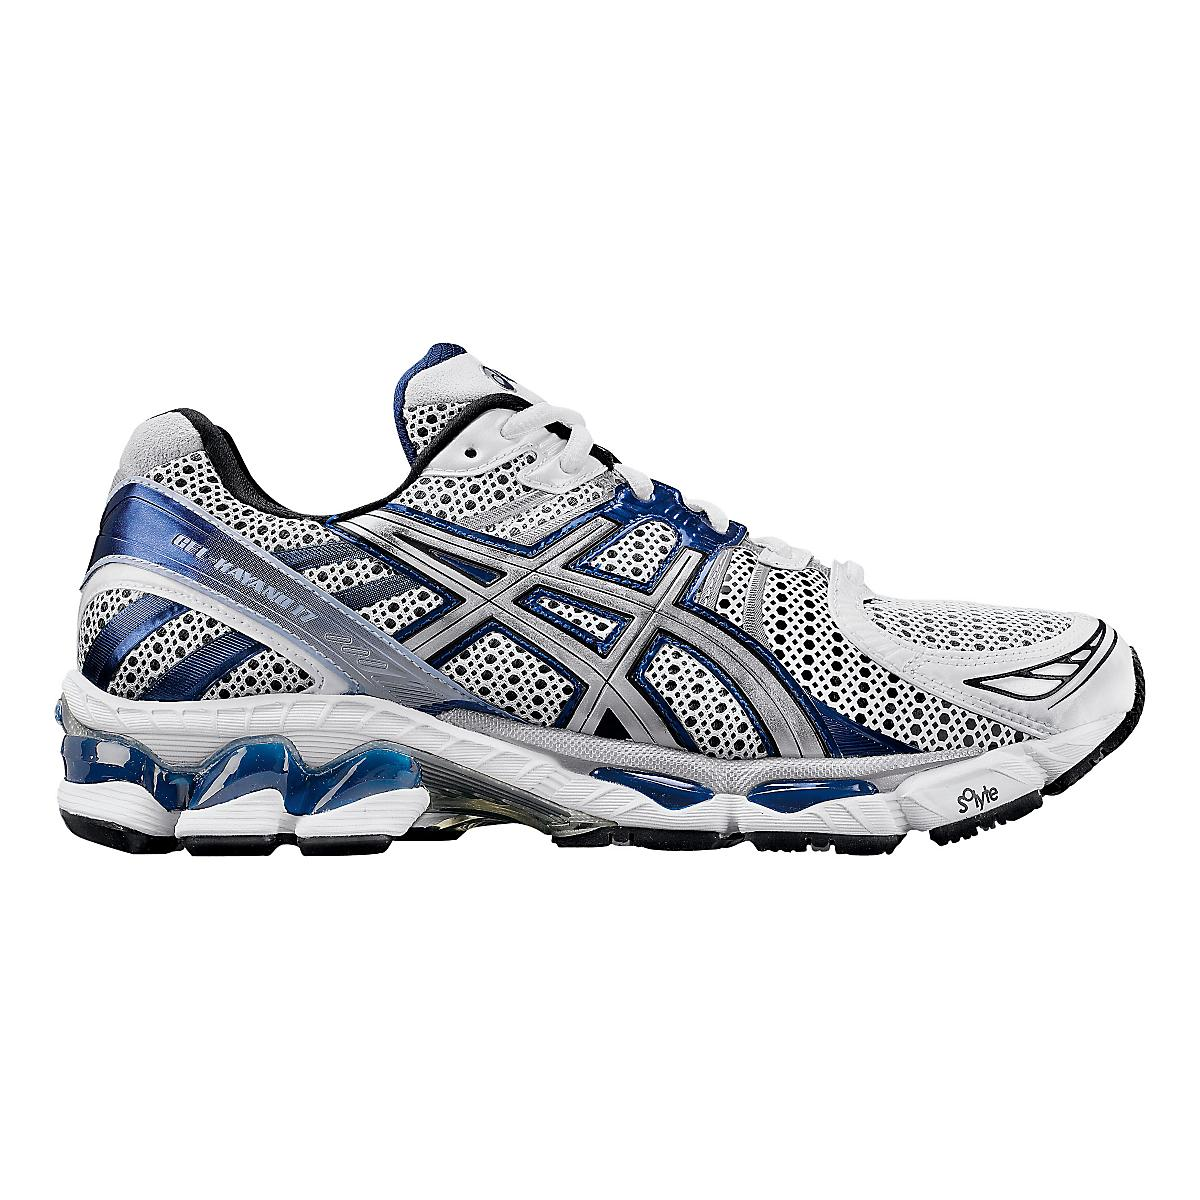 cde916d5408 Mens ASICS GEL-Kayano 17 Running Shoe at Road Runner Sports